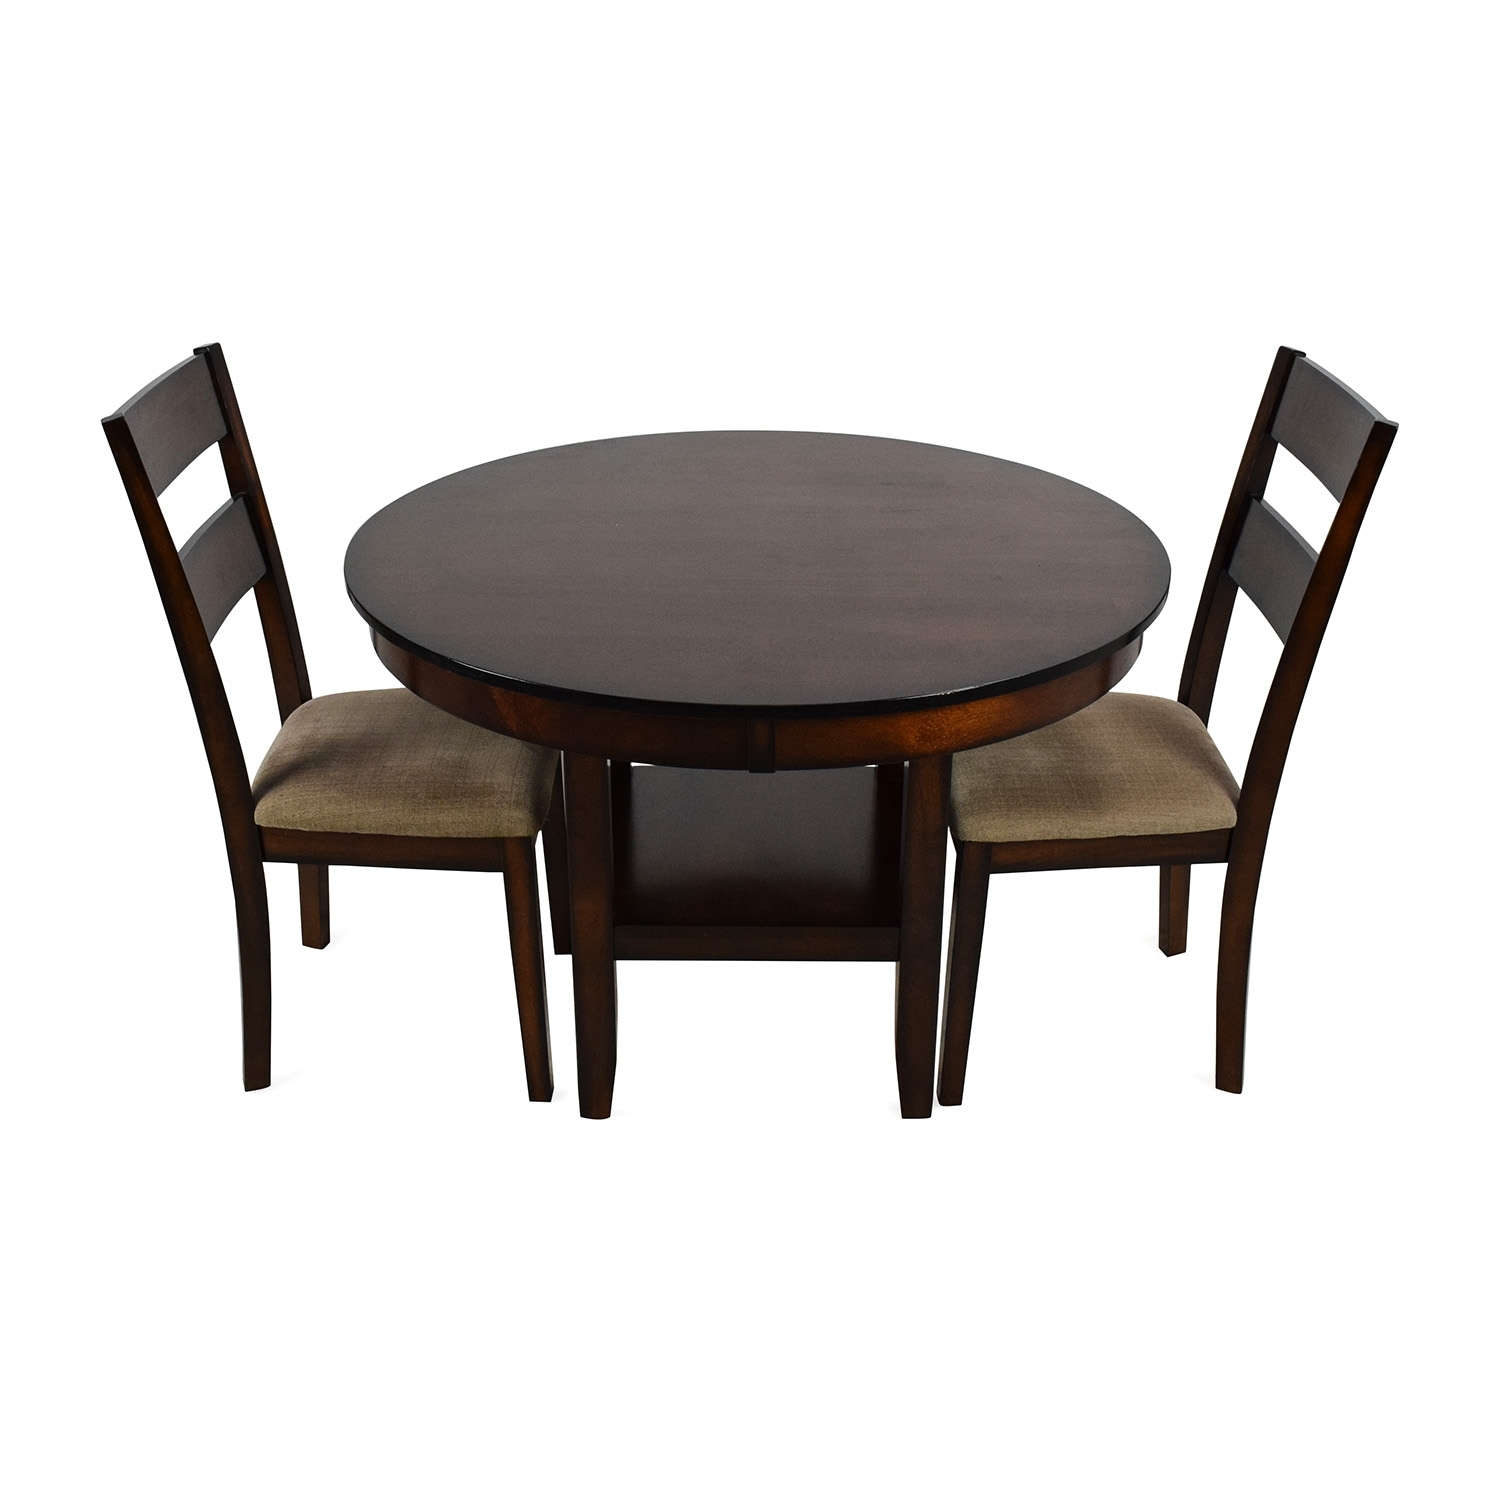 85% Off – Macy's Macy's Branton 3 Piece Dining Room Collection / Tables Within Most Popular Macie 5 Piece Round Dining Sets (Image 6 of 20)